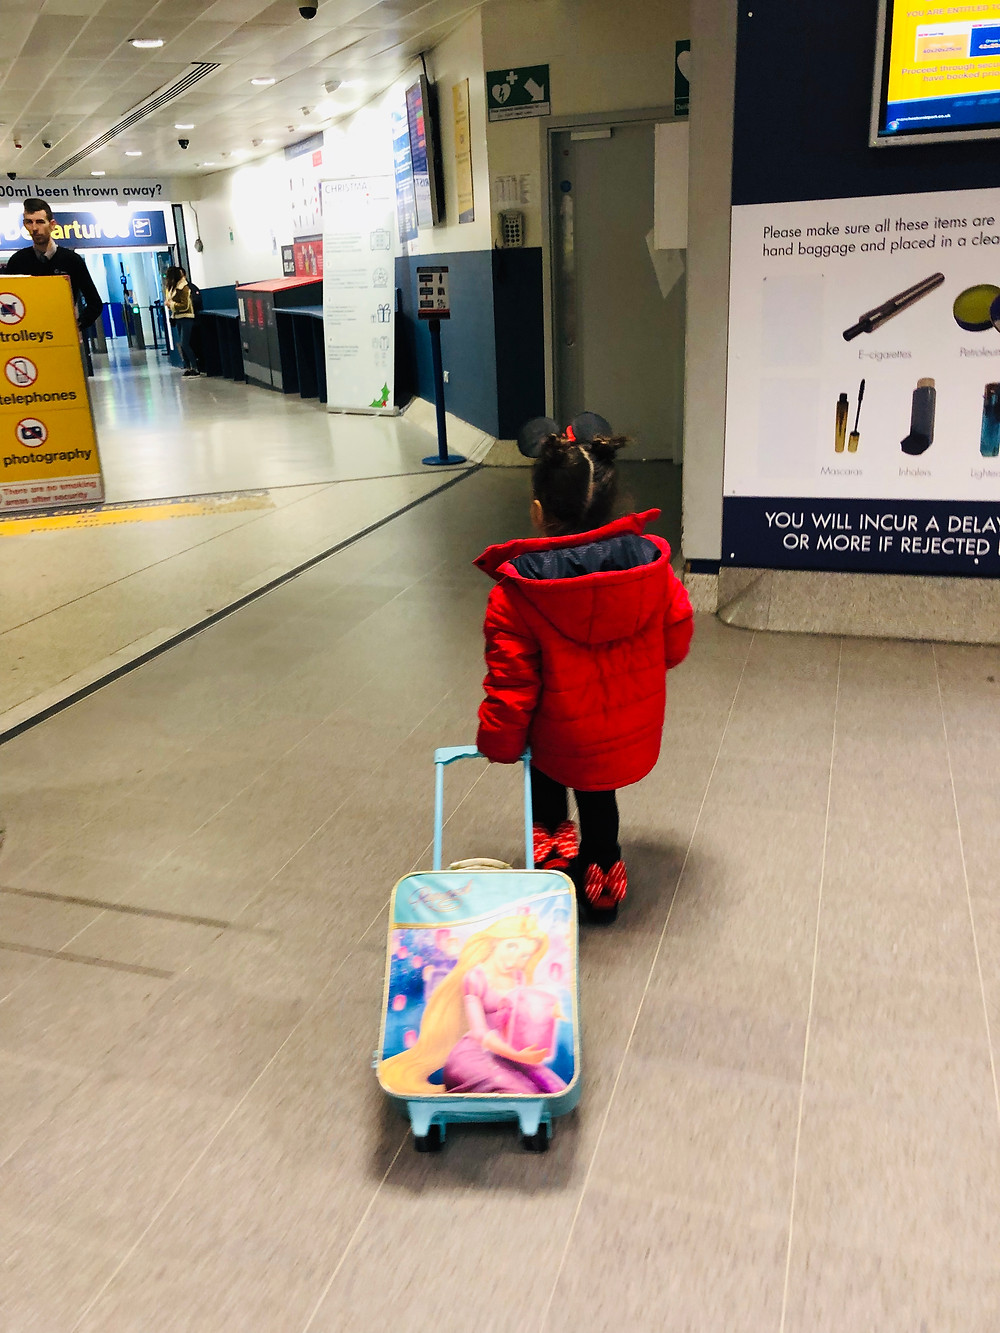 4 year old pulls a Rapunzel suitcase through airport departures